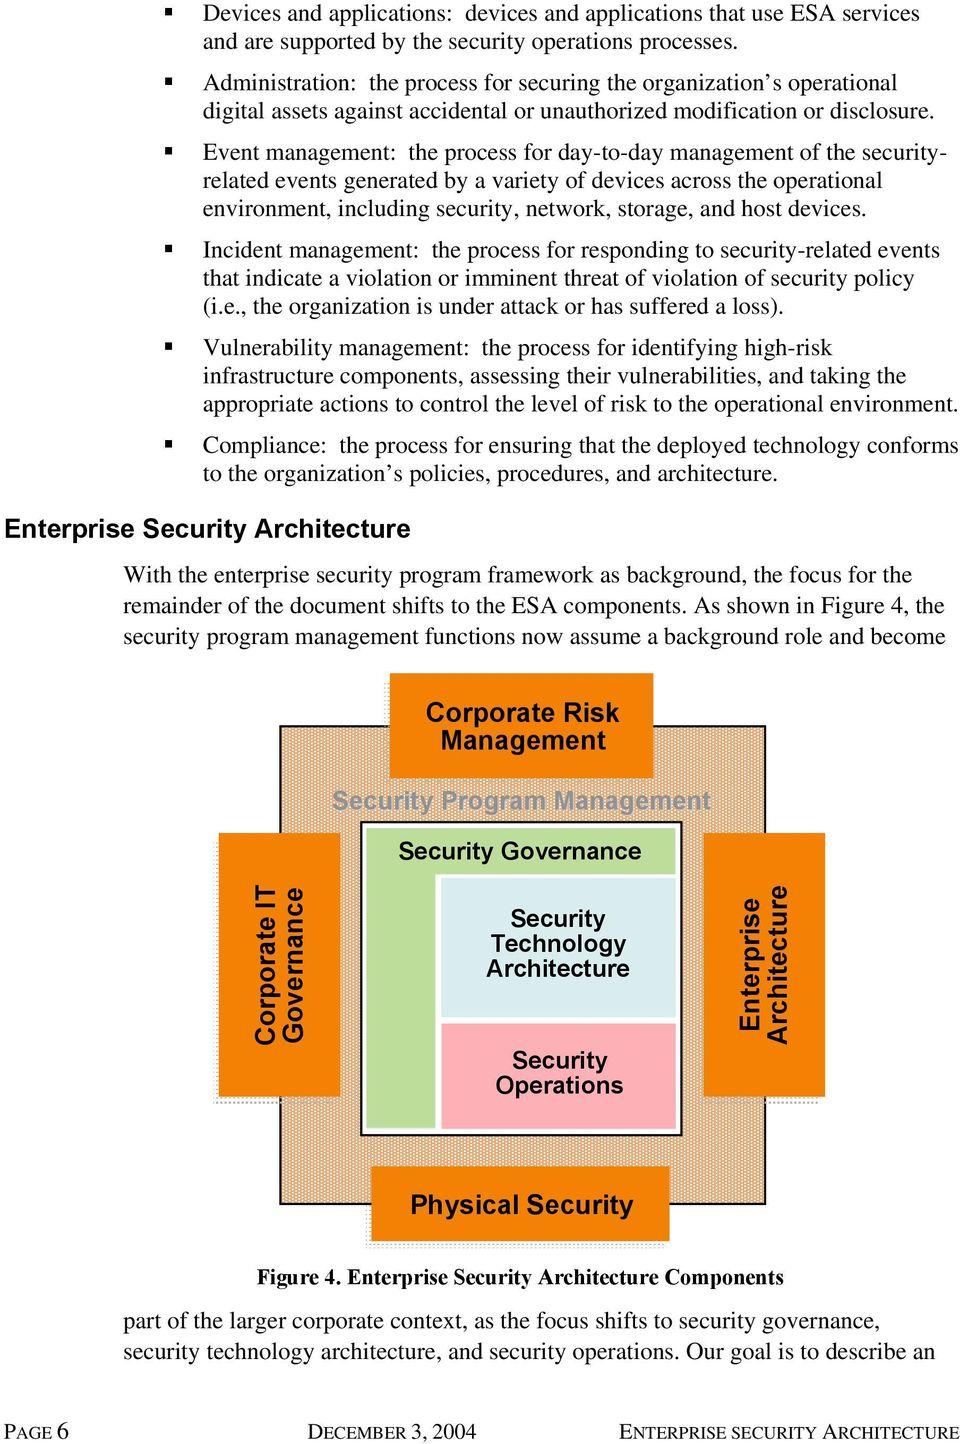 Event management: the process for day-to-day management of the securityrelated events generated by a variety of devices across the operational environment, including security, network, storage, and